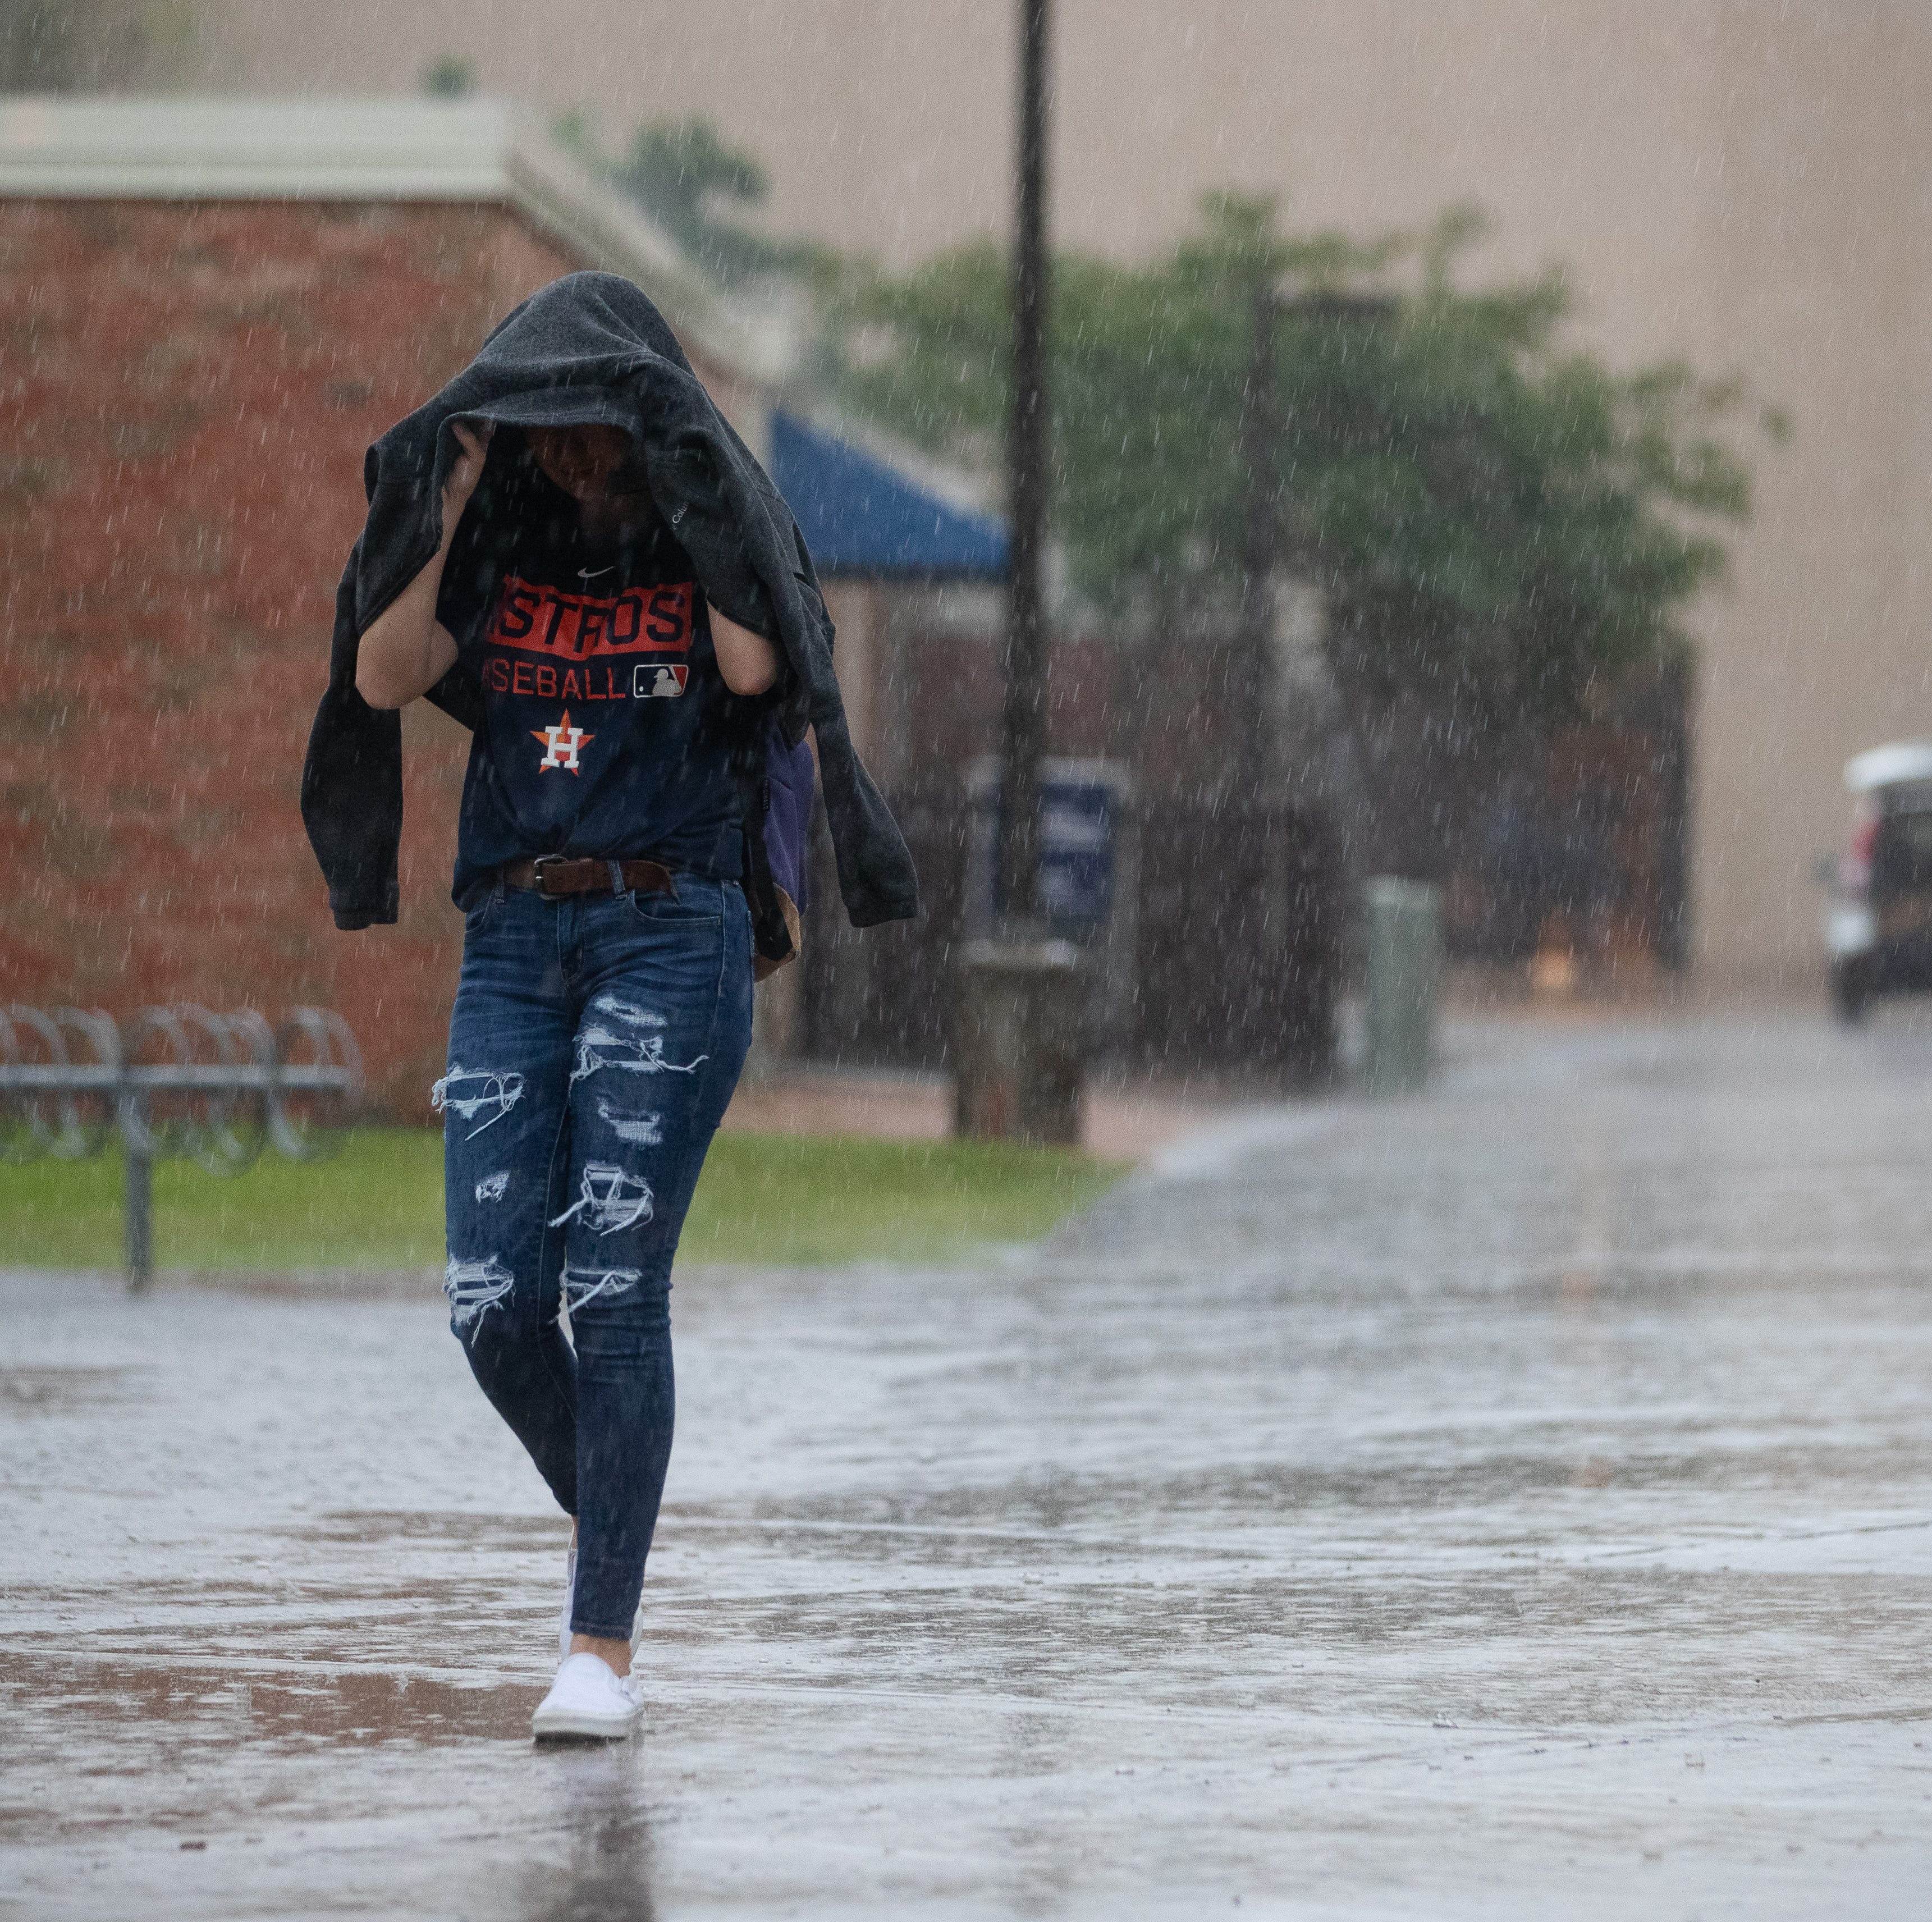 South Texas weather forecast: Here's how much rain to expect on katy texas weather map, nashville tennessee weather map, schlitterbahn corpus christi map, edinburg texas weather map, denton texas weather map, midland texas weather map, corpus christi city map, austin texas weather map, columbus ohio weather map, houston texas weather map, orlando florida weather map, corpus christi on a map, dallas texas weather map, corpus christi tx map, orange texas weather map, baton rouge louisiana weather map, lubbock texas weather map, corpus christi road map, cleveland ohio weather map, corpus christi zip code map,